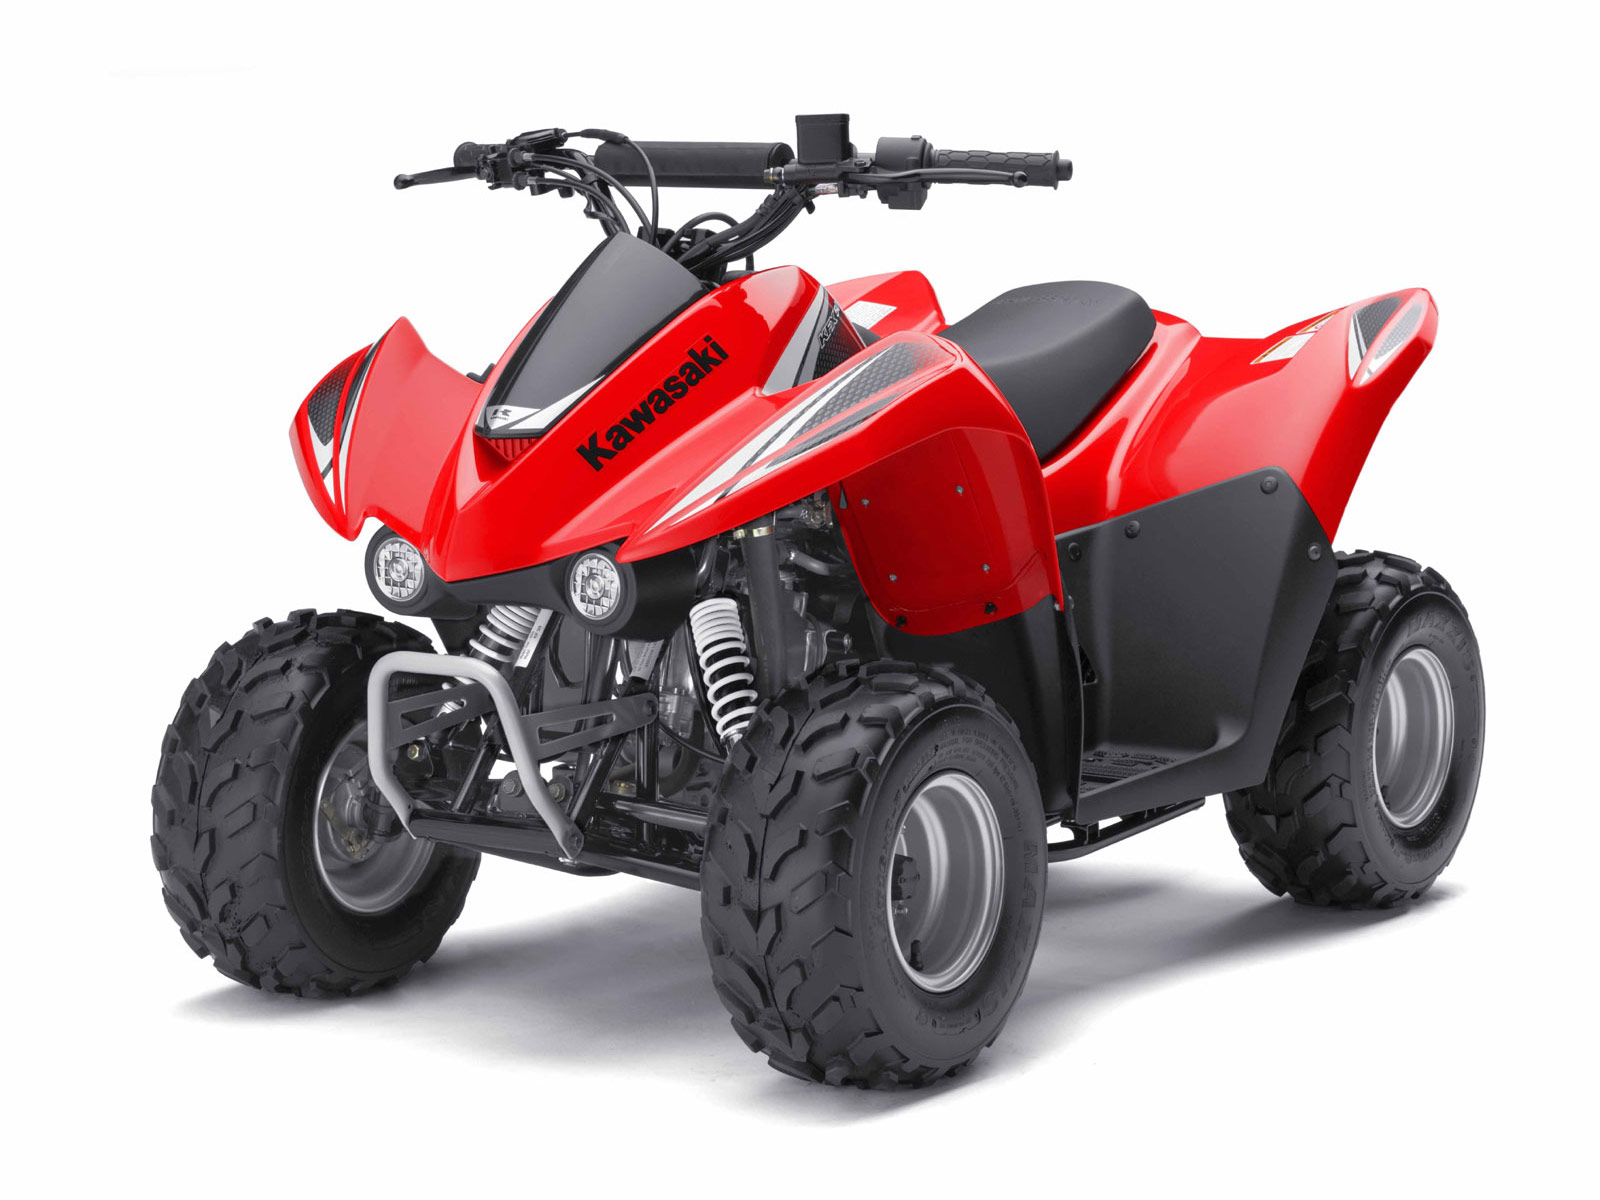 2009 kawasaki kfx50 atv pictures accident lawyers information. Black Bedroom Furniture Sets. Home Design Ideas